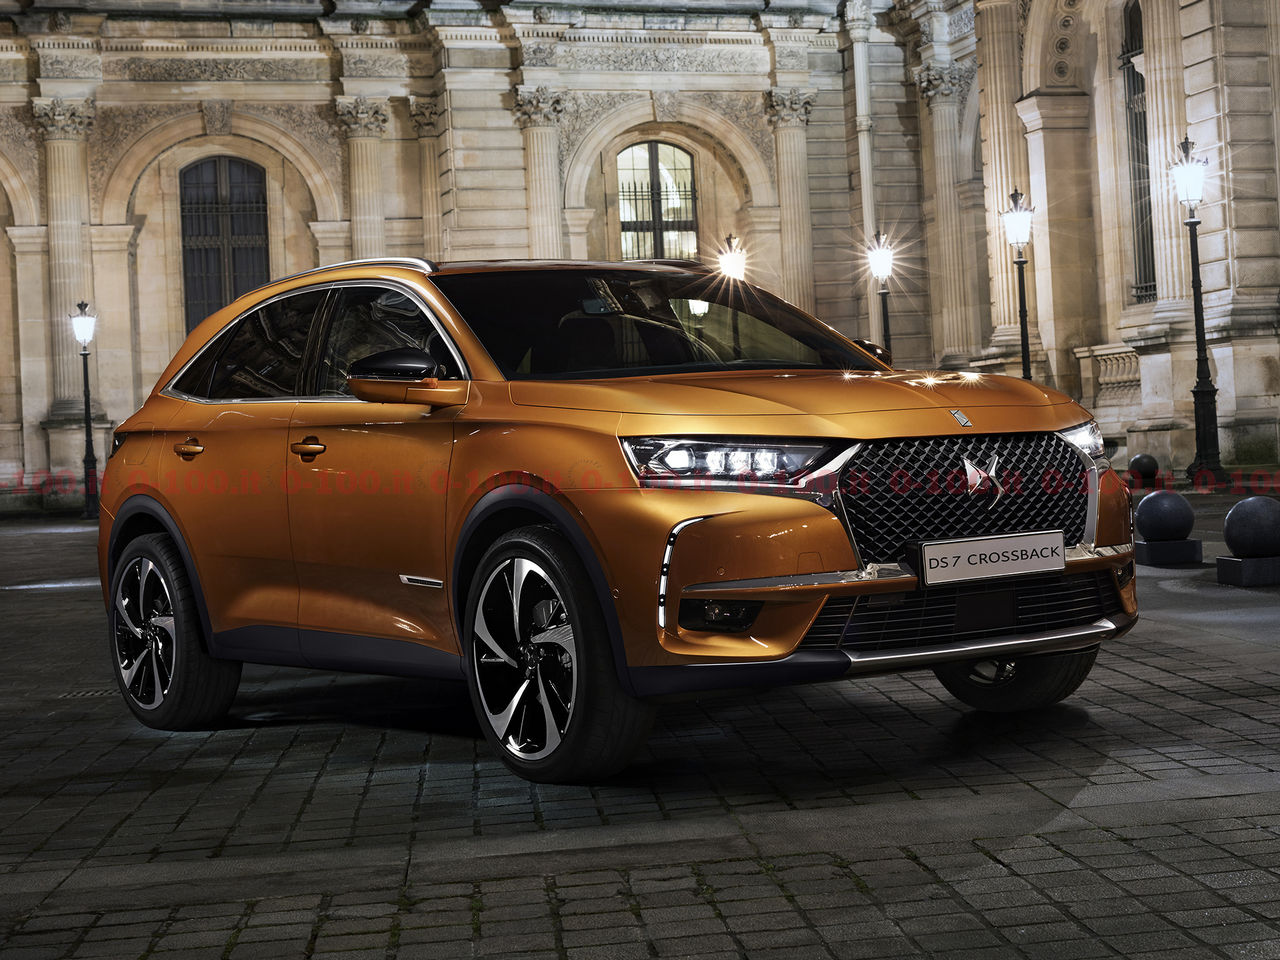 ds7-crossback_2017_0-100_5